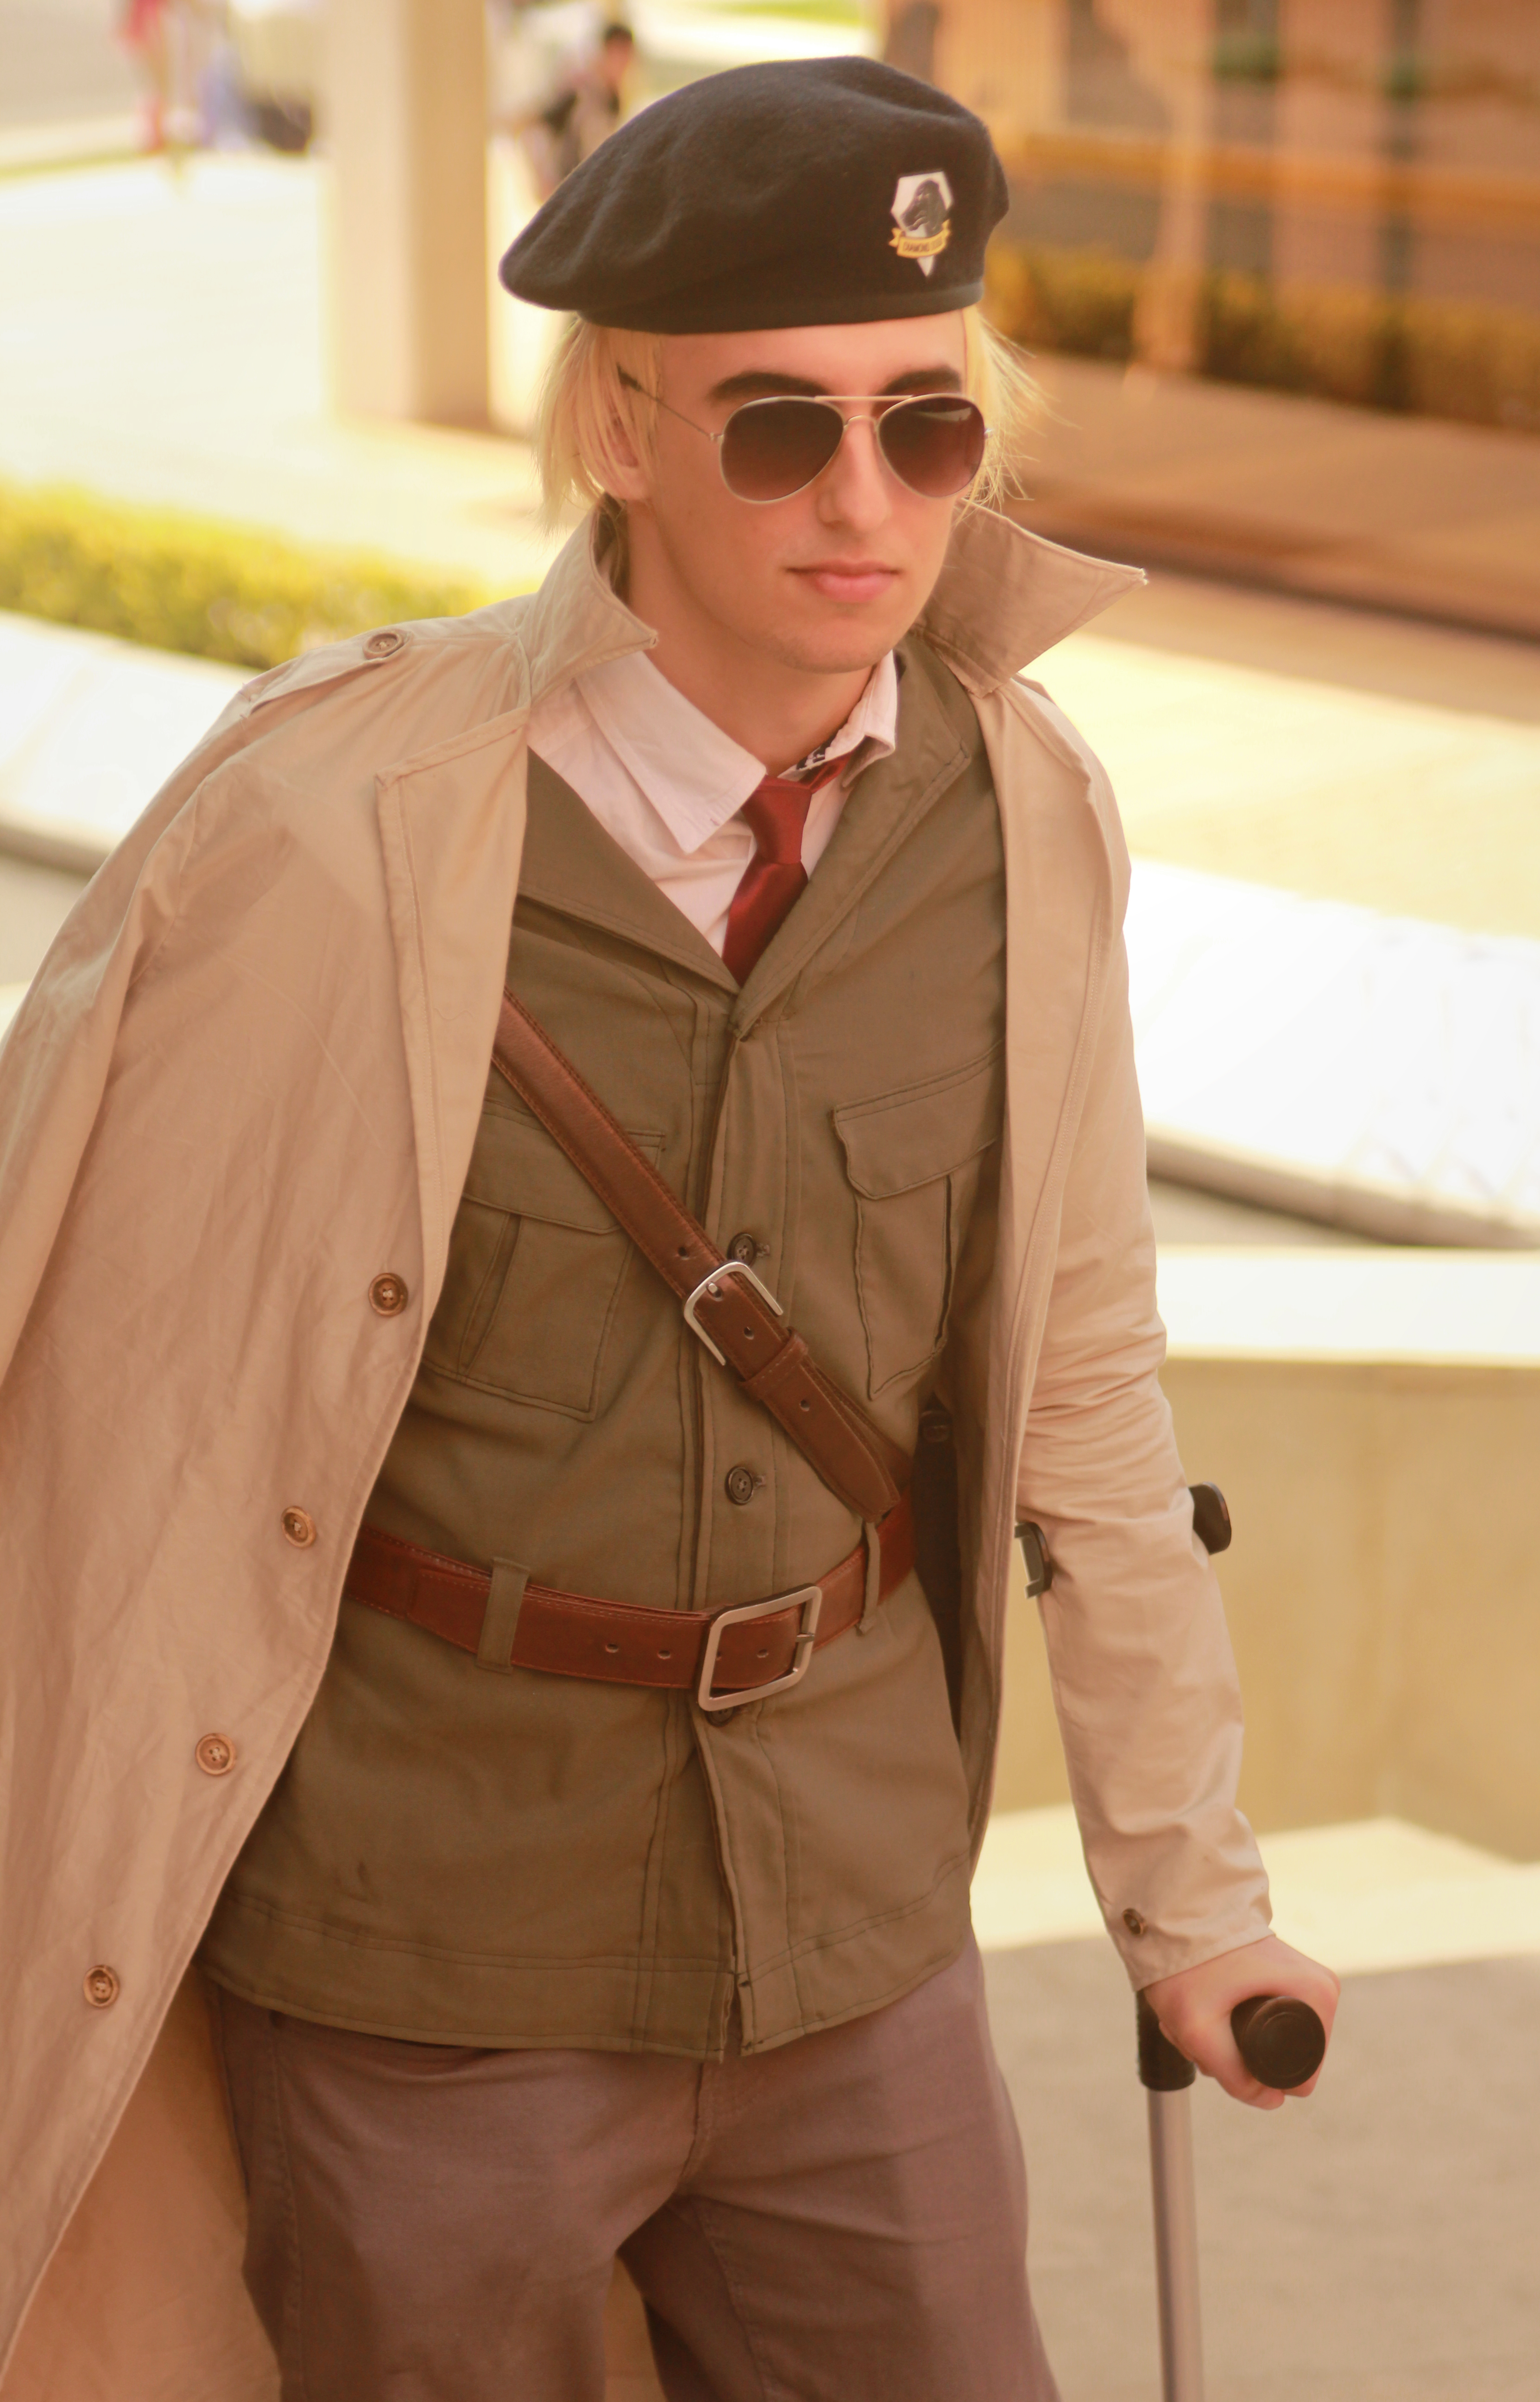 Kazuhira Miller Cosplay Mgs The Phantom Pain By Duxdante On Deviantart Mgs5 is the eleventh canonical installment in the metal gear series and the fifth within the series' chronology. deviantart